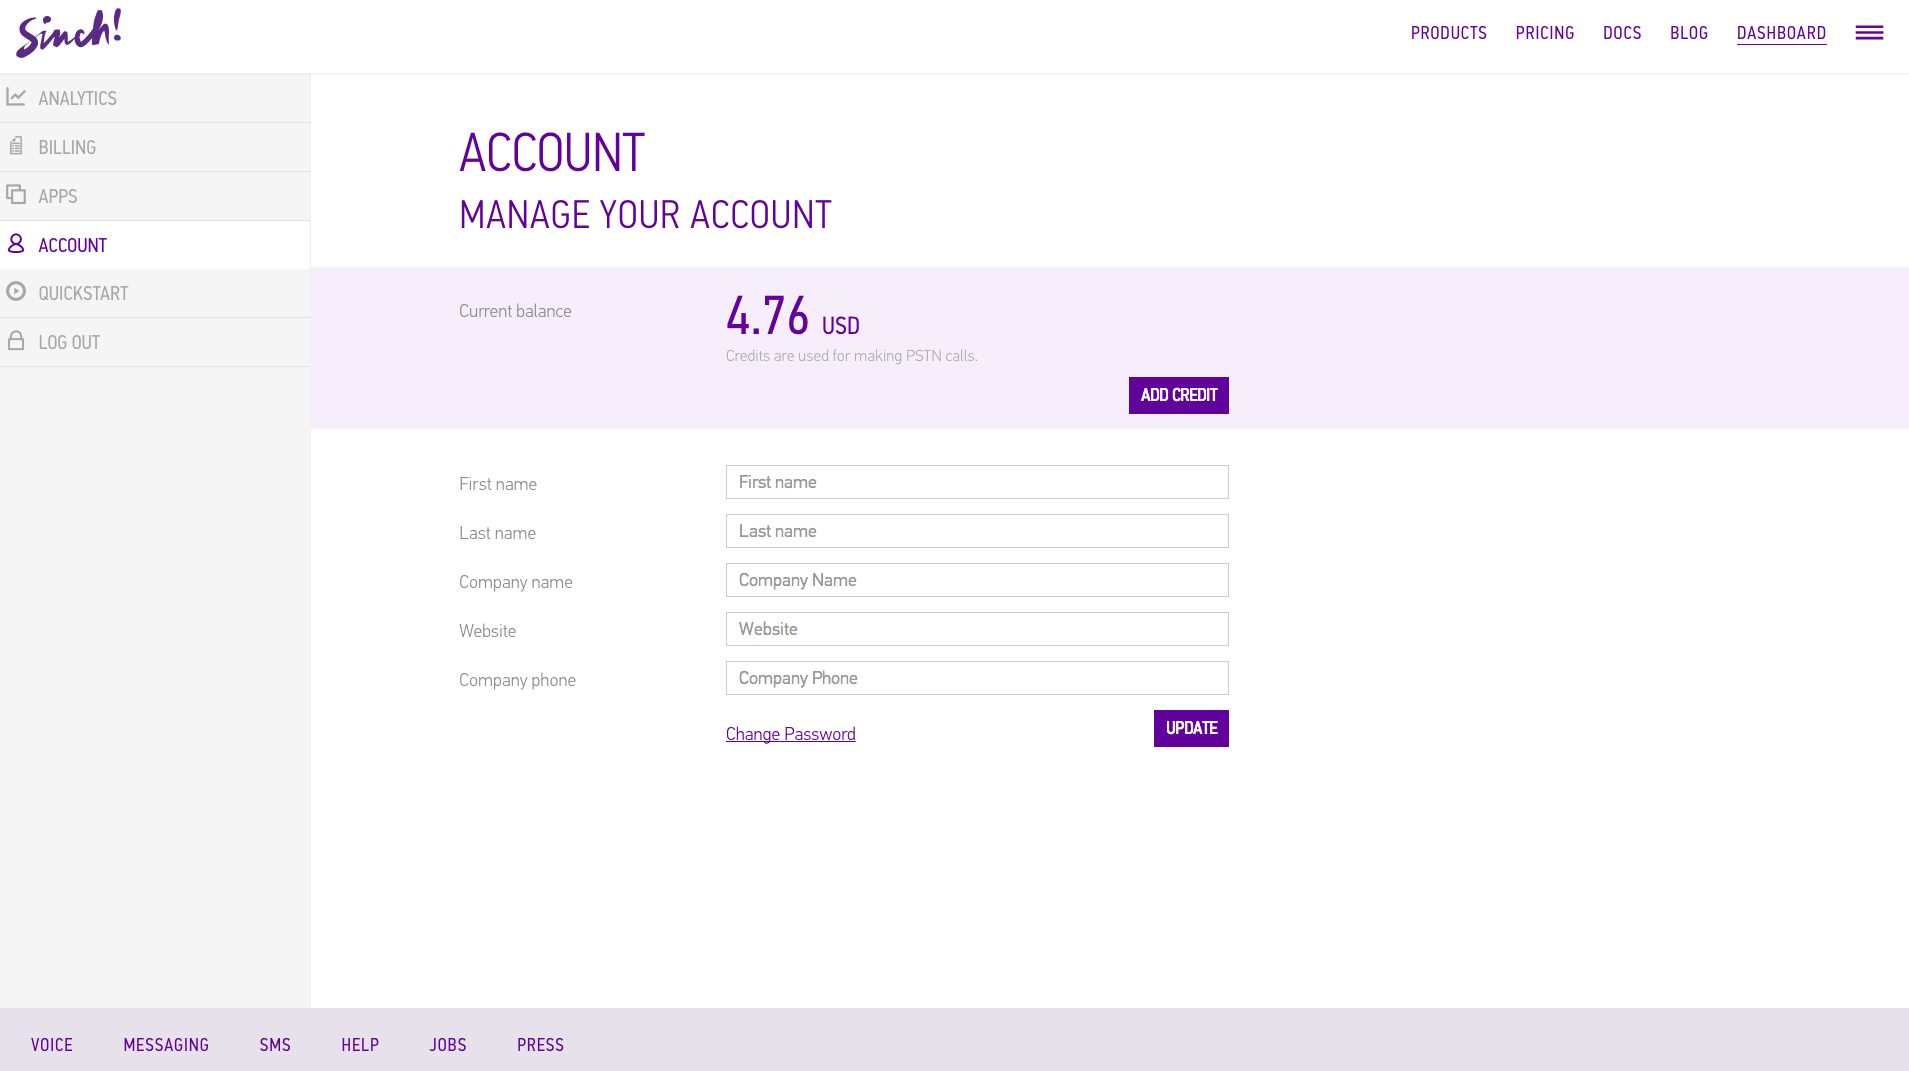 Sinch Demo - Your Account